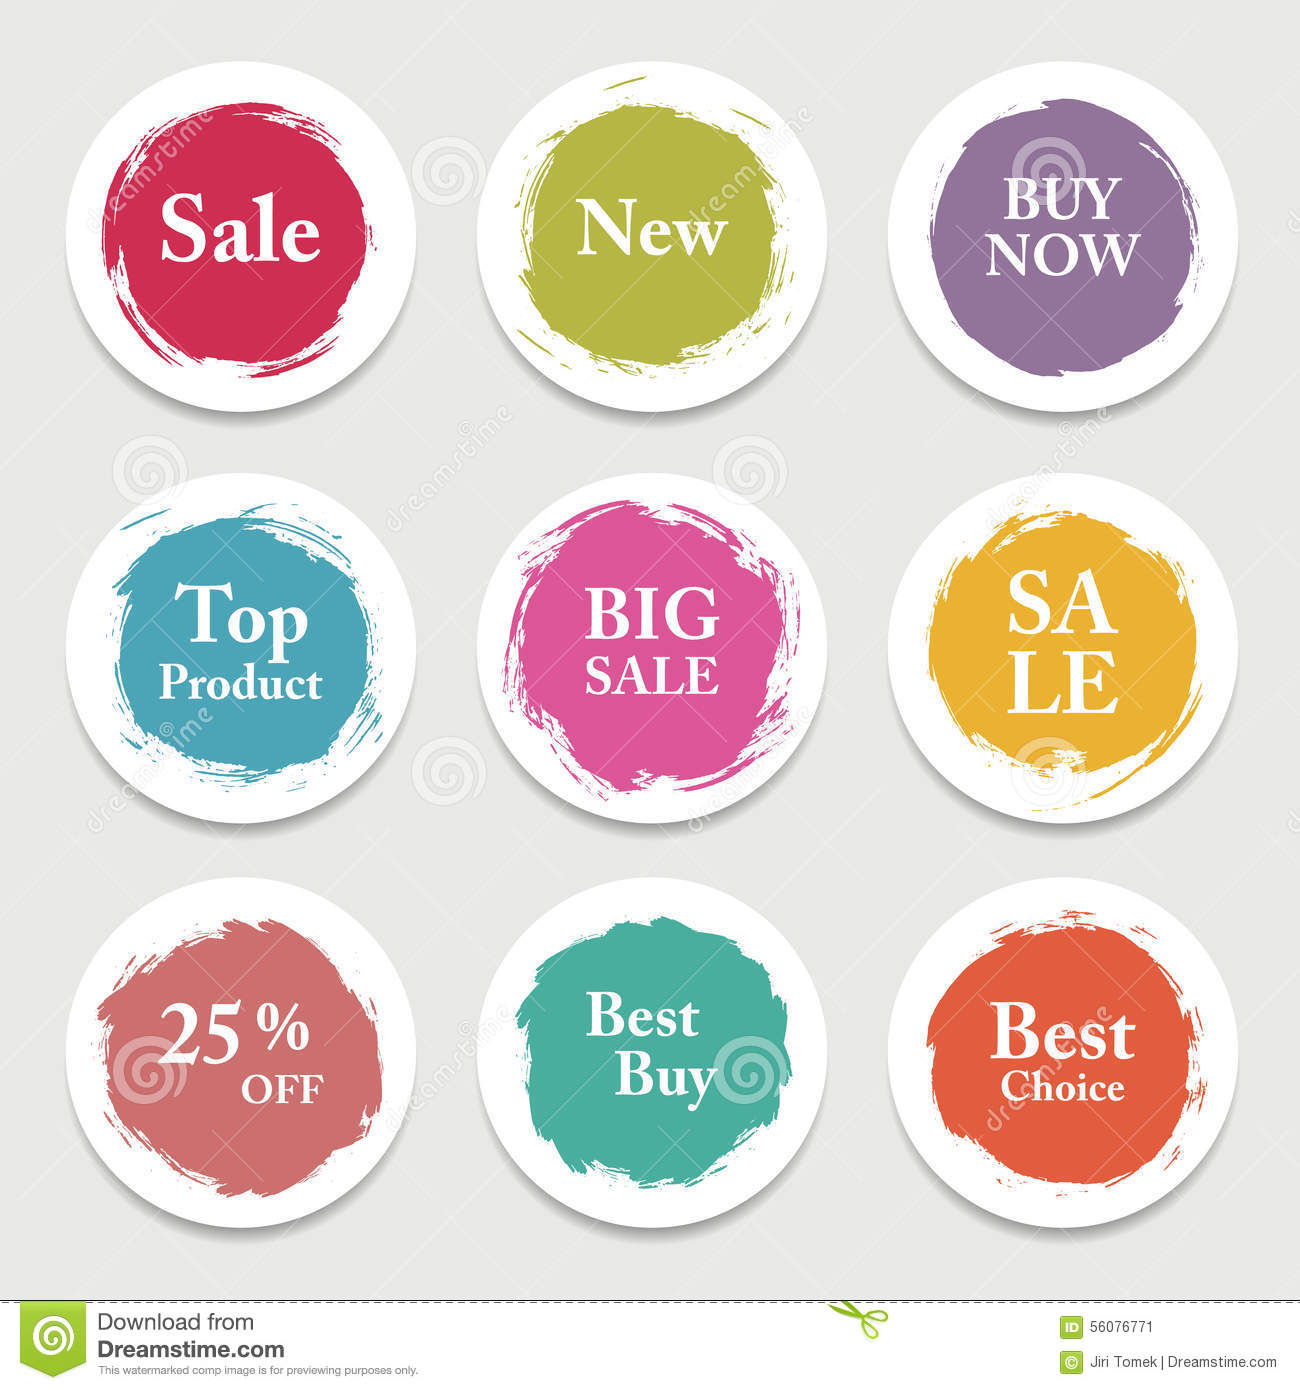 Colorful vector paper circle, sticker, label, banner with brush strokes.